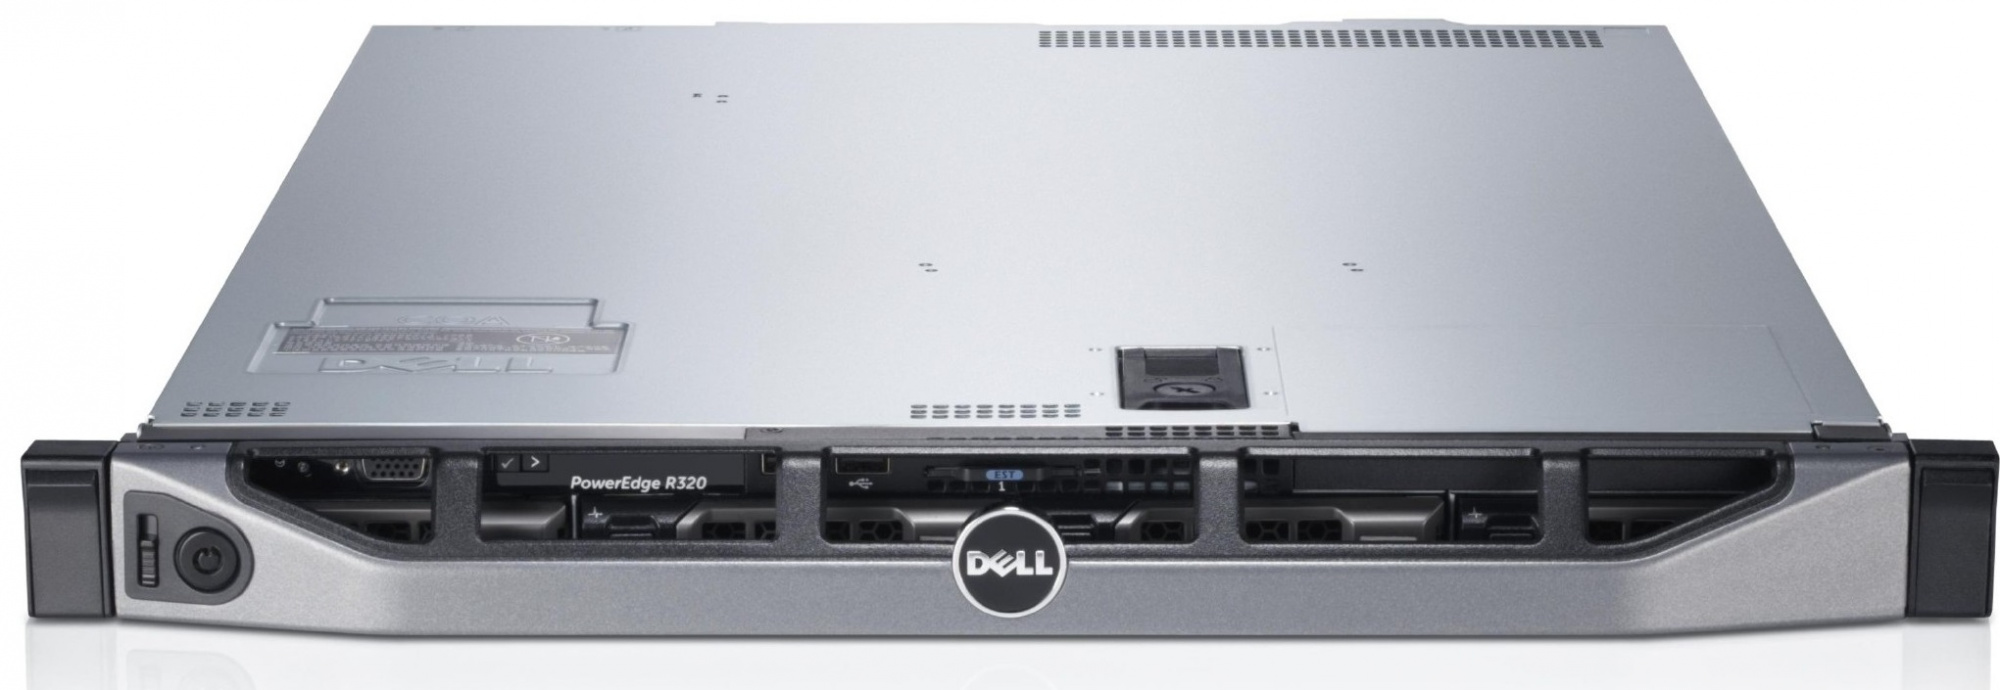 Dell PowerEdge R320 210-ACCX/023